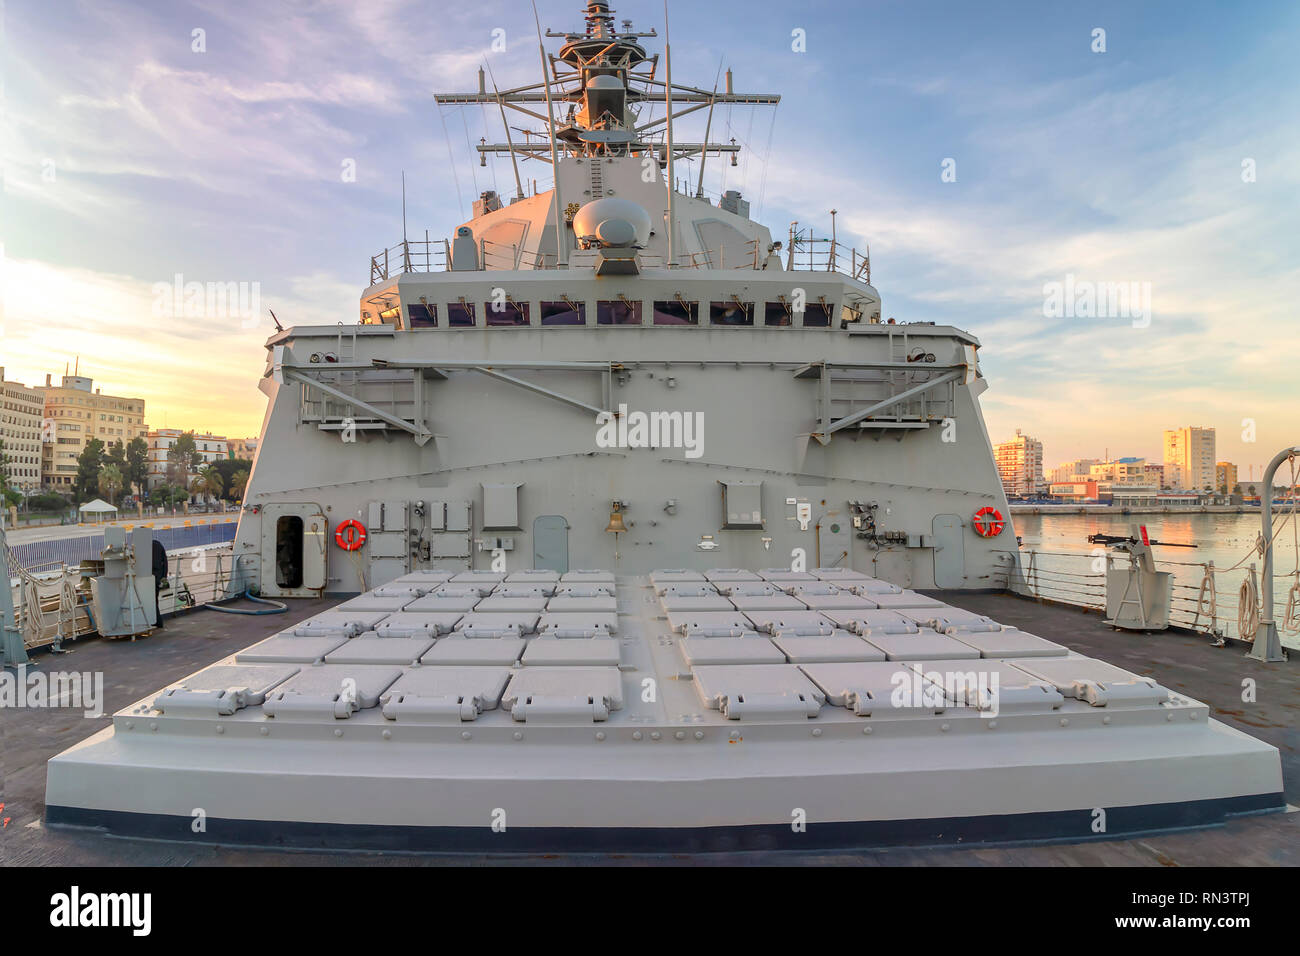 Battleship moored in the Cadiz bay port at sunset with view of Closed mines ballistic nuclear missiles - Stock Image